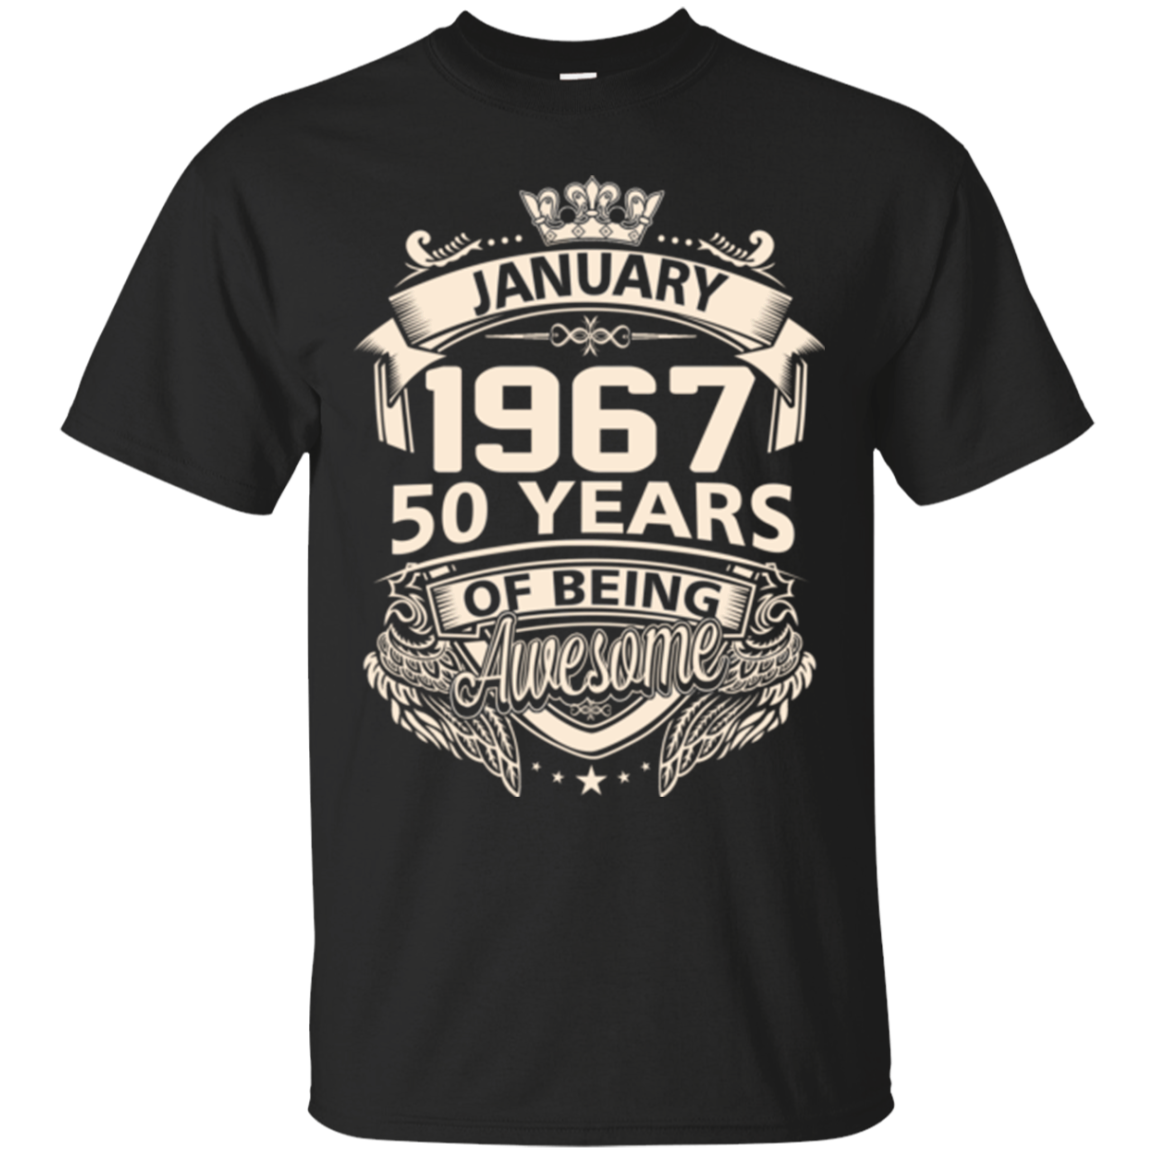 Awesome Shirts February 1967 50 Years Being Awesome